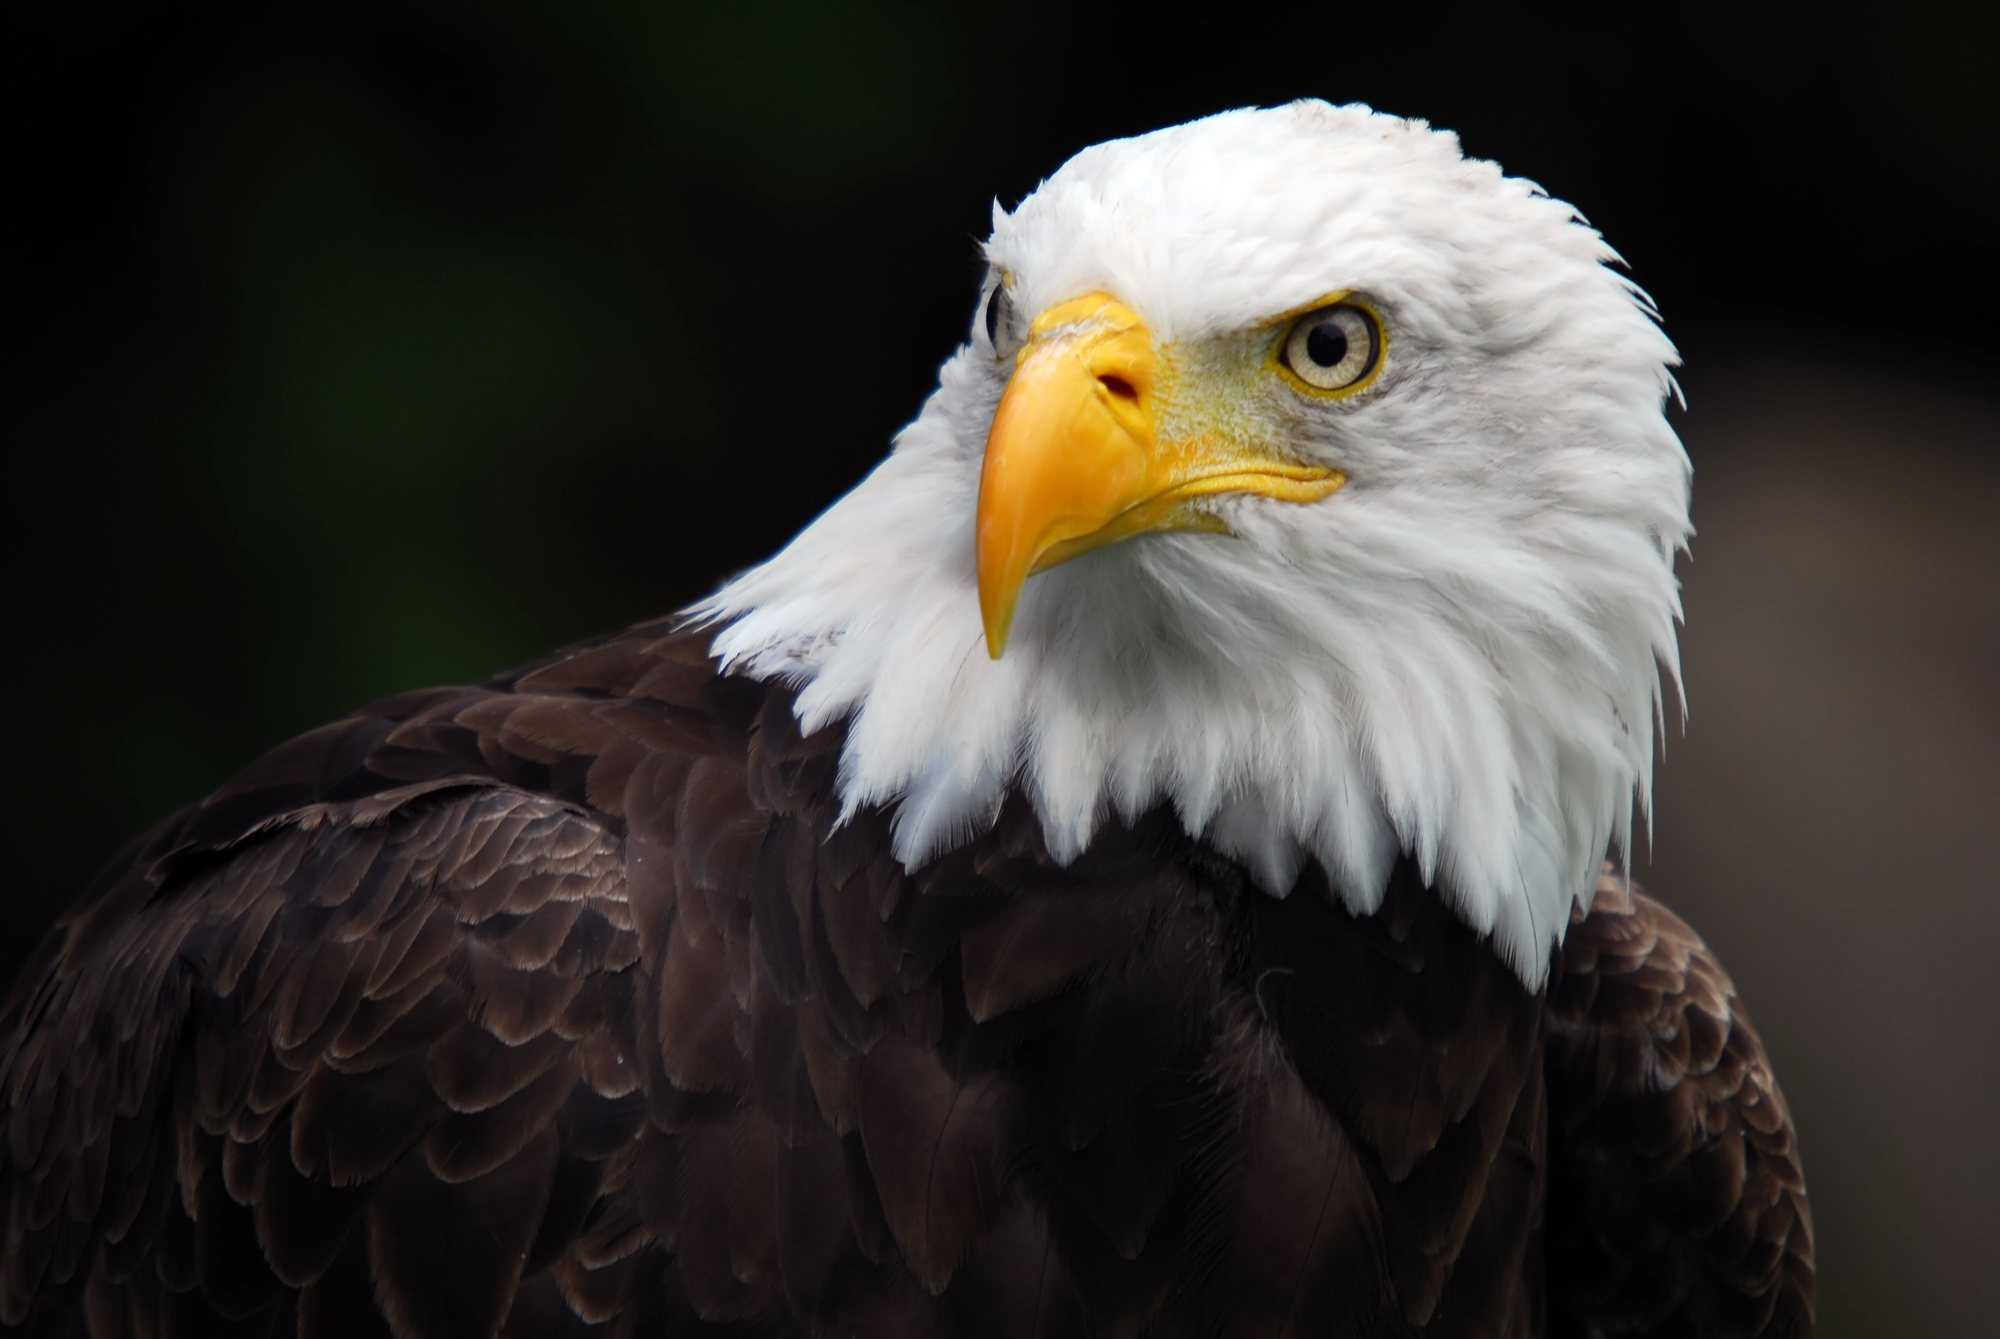 2000x1339 American Eagle Wallpaper Ahw136